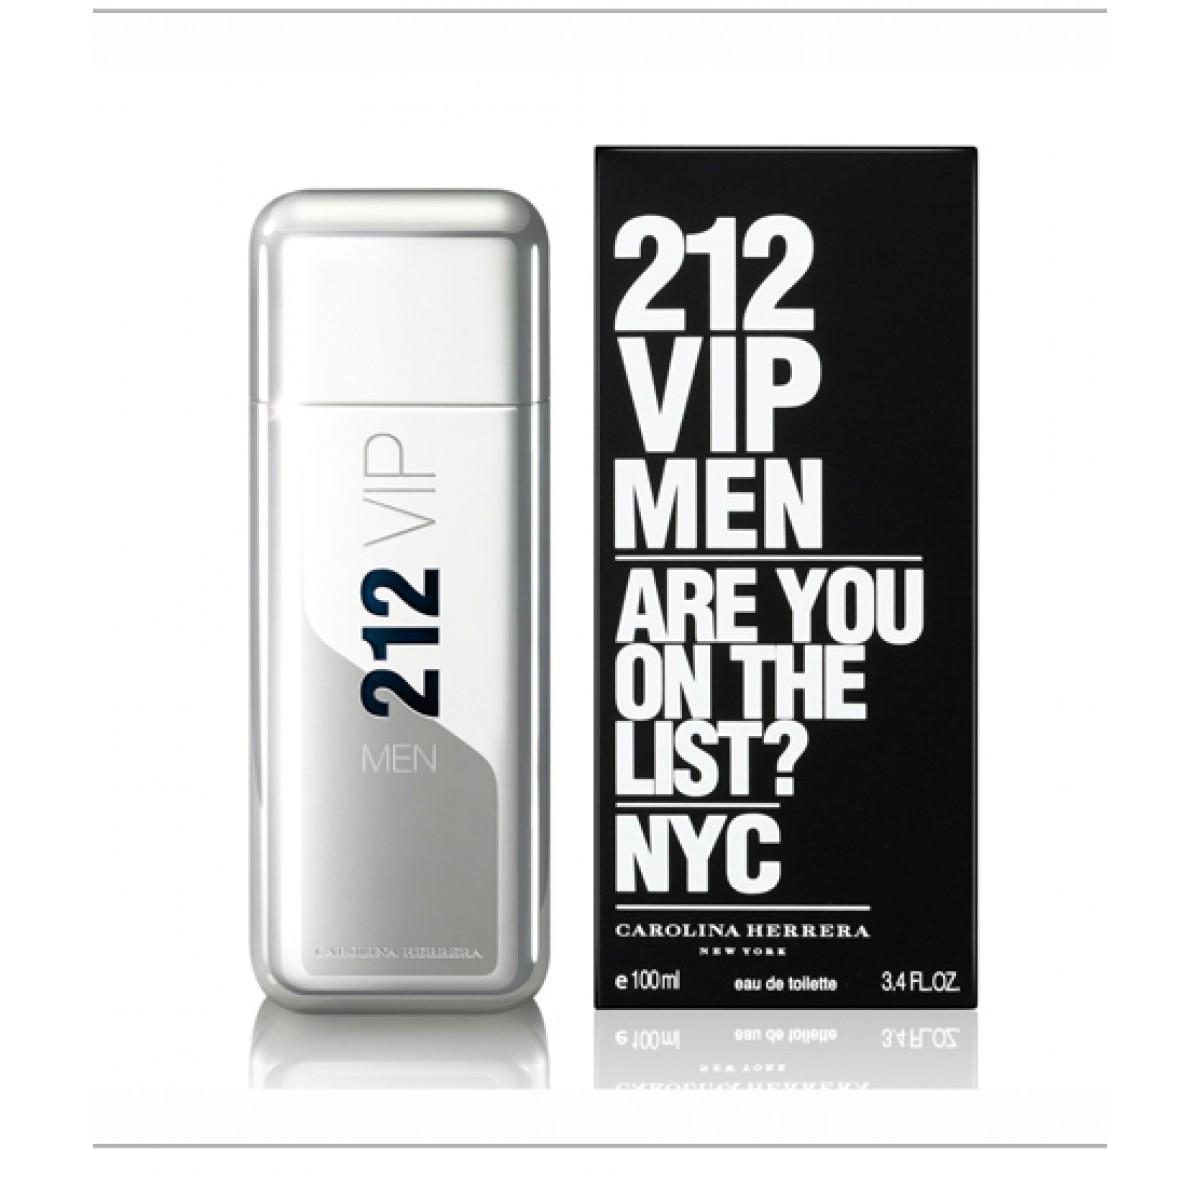 212 Vip Men Are You on The List? Nyc by Carolina Herrera Edt 100ml